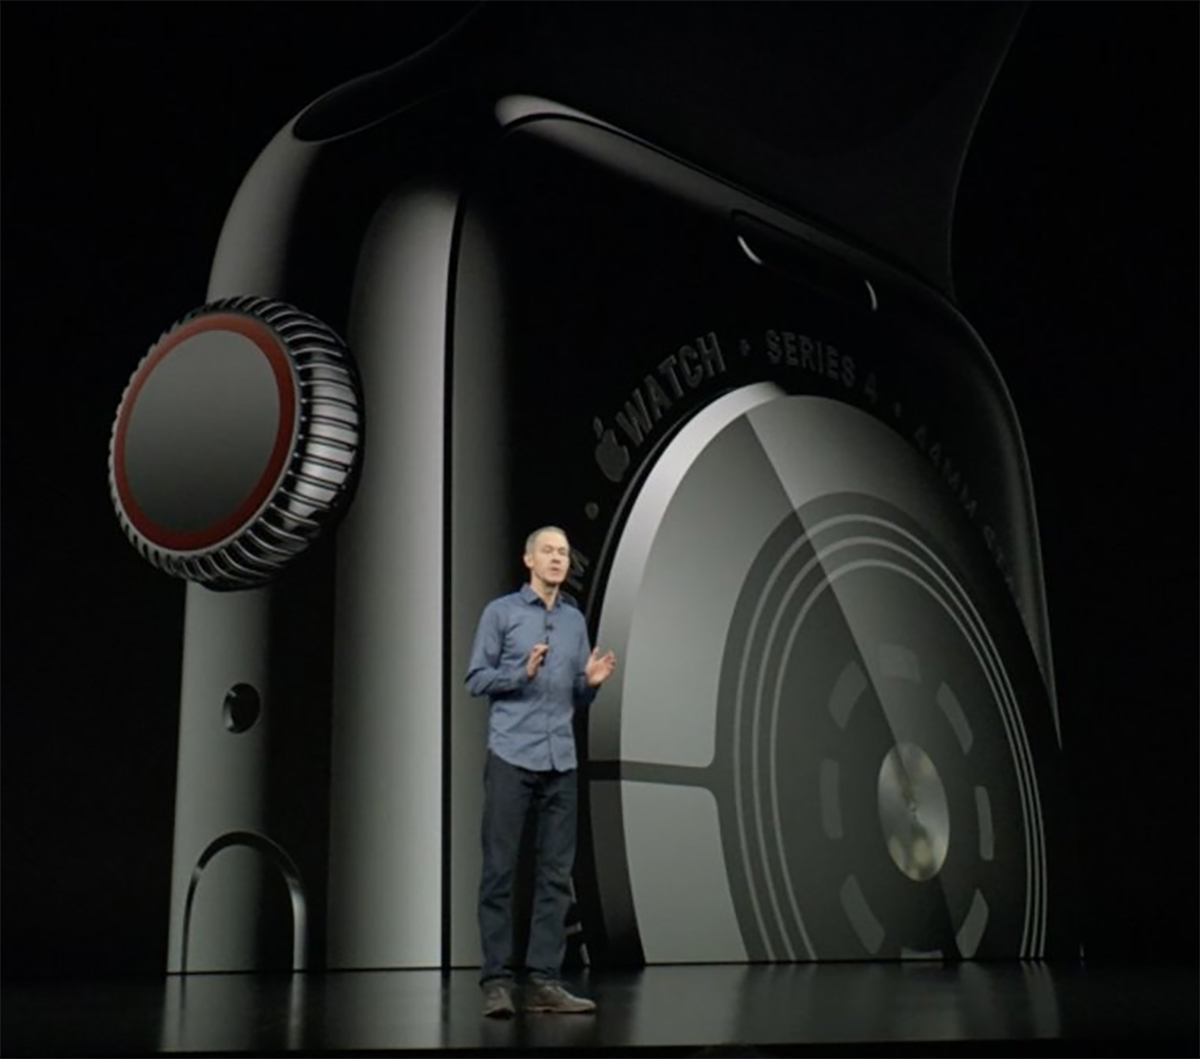 Presentación del Apple Watch Series 4